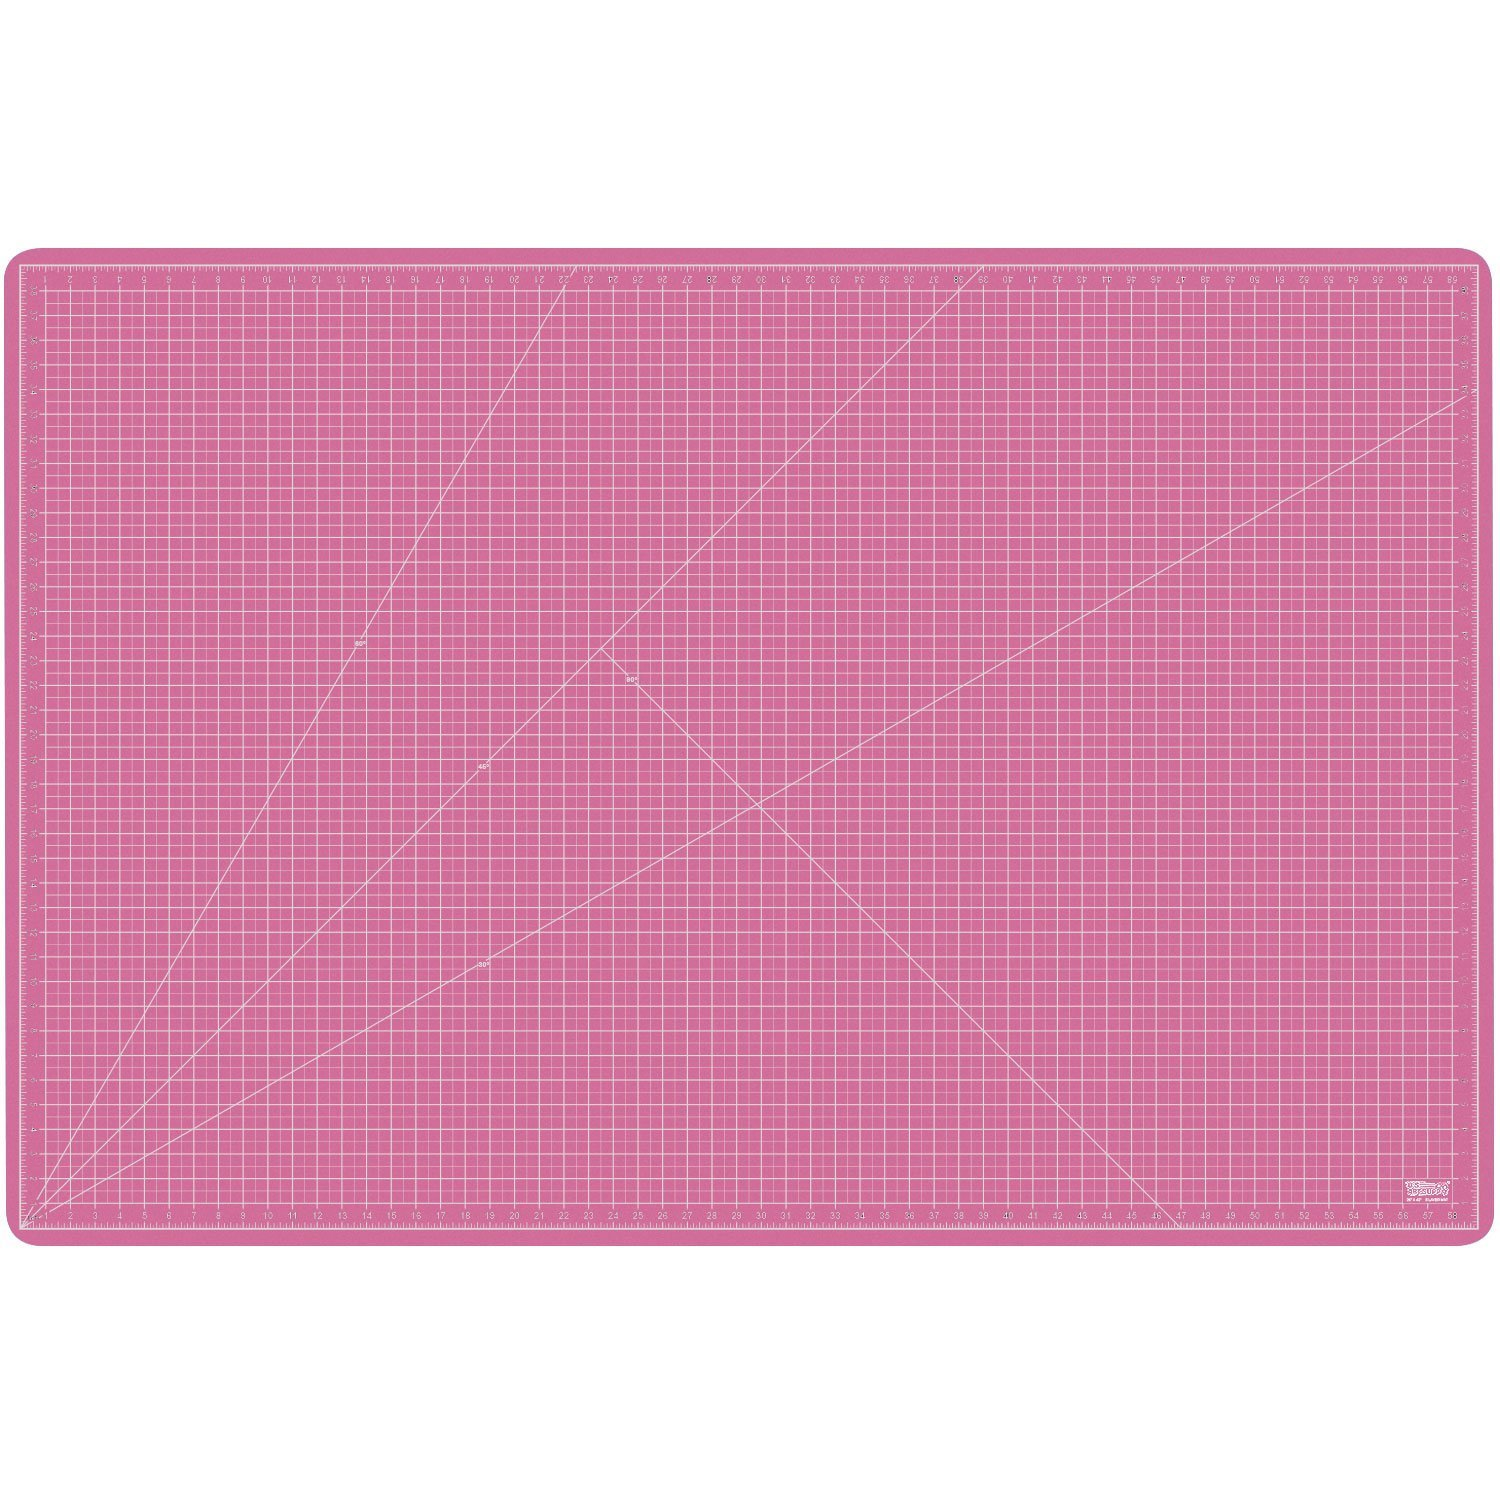 US Art Supply 40'' x 60'' PINK/BLUE Professional Self Healing 5-Ply Double Sided Durable Non-Slip PVC Cutting Mat Great for Scrapbooking, Quilting, Sewing and all Arts & Crafts Projects (Choose Green/Black or Pink/Blue Below)